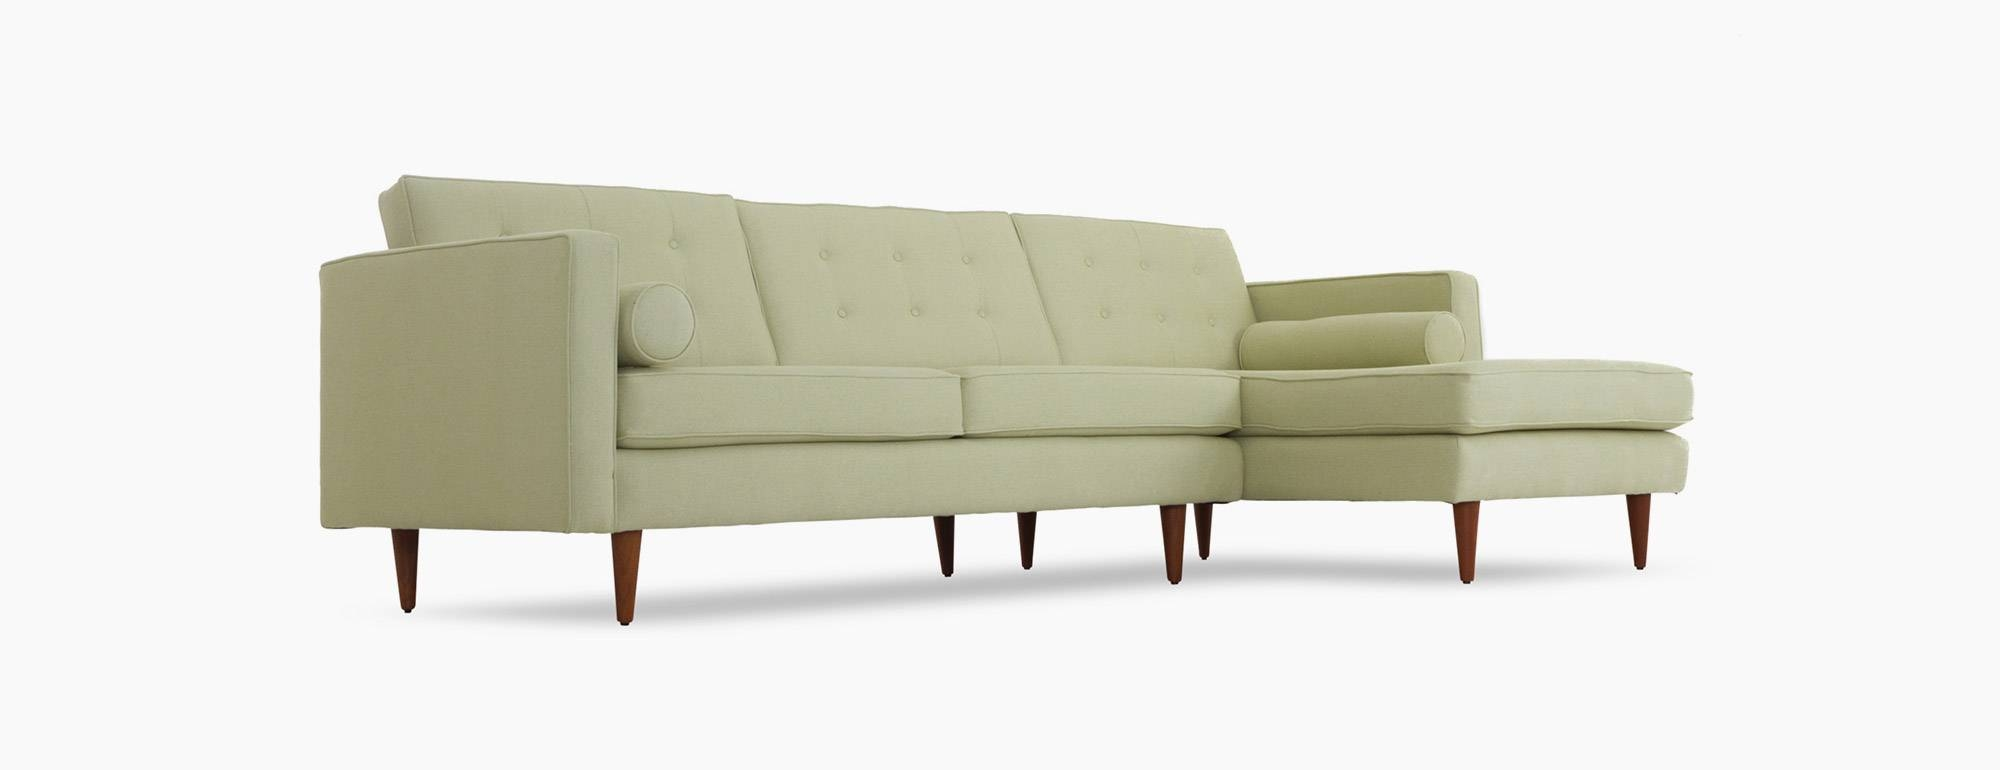 Braxton Sectional | Joybird for Braxton Sectional Sofas (Image 5 of 15)